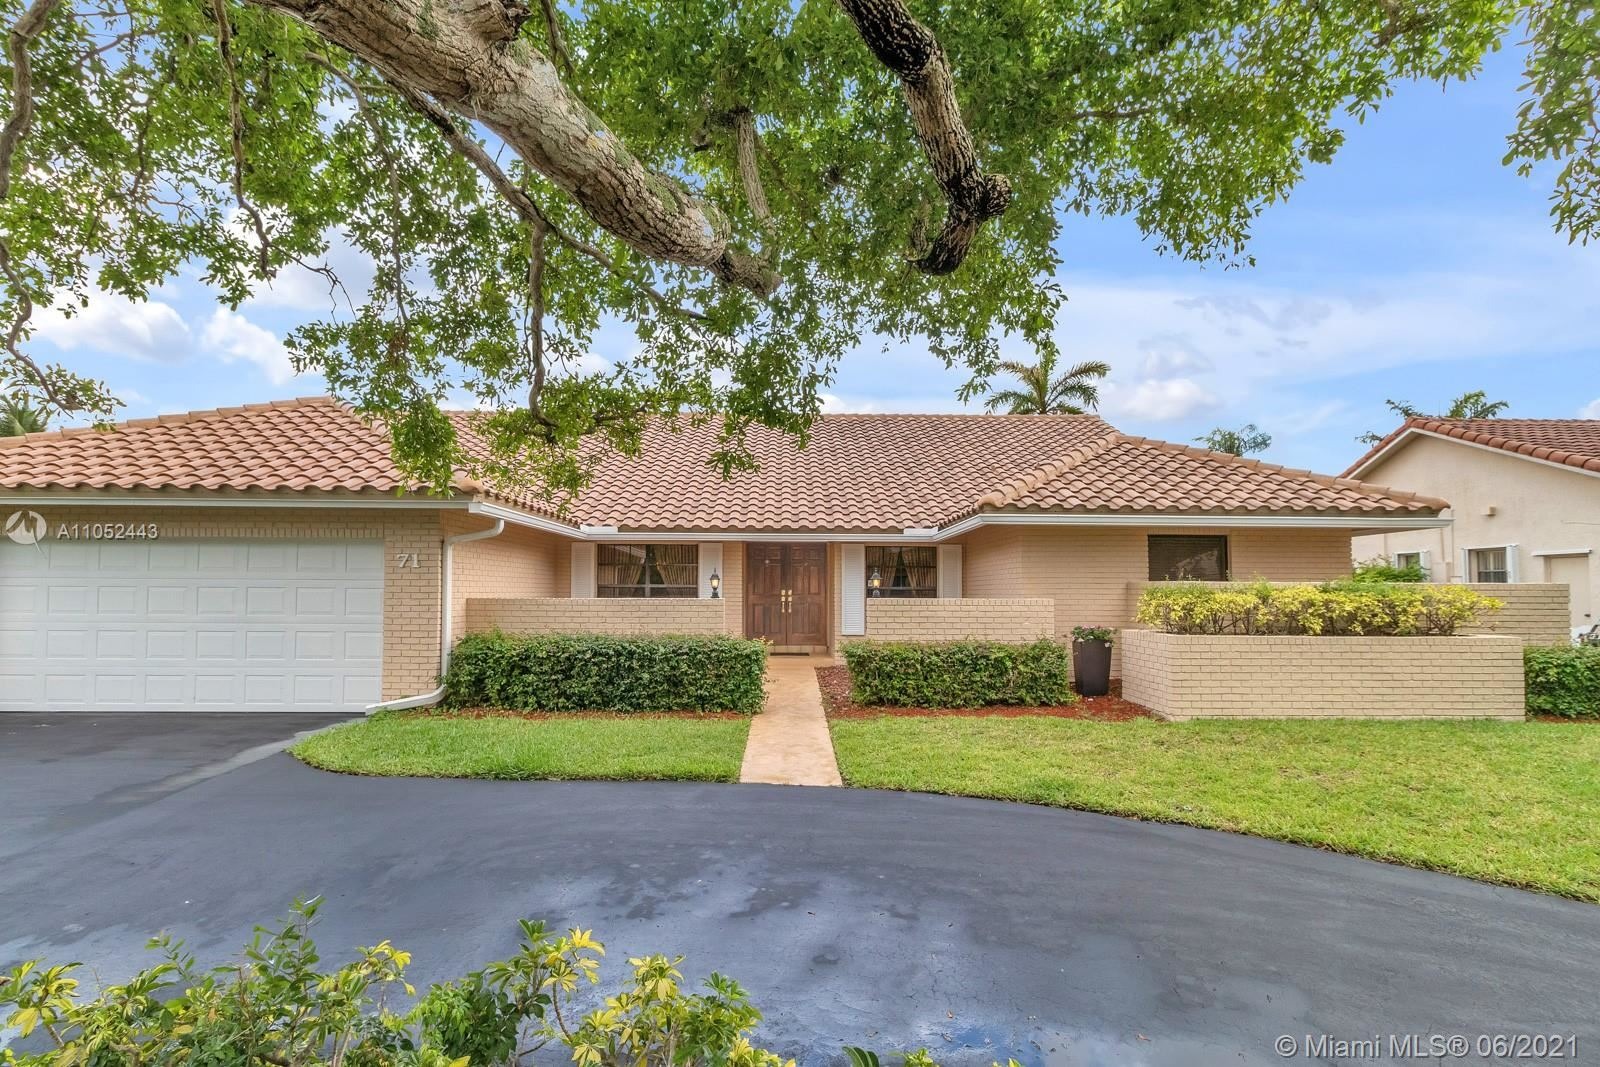 71 SW 114th Ter, Coral Springs, FL 33071 - #: A11052443